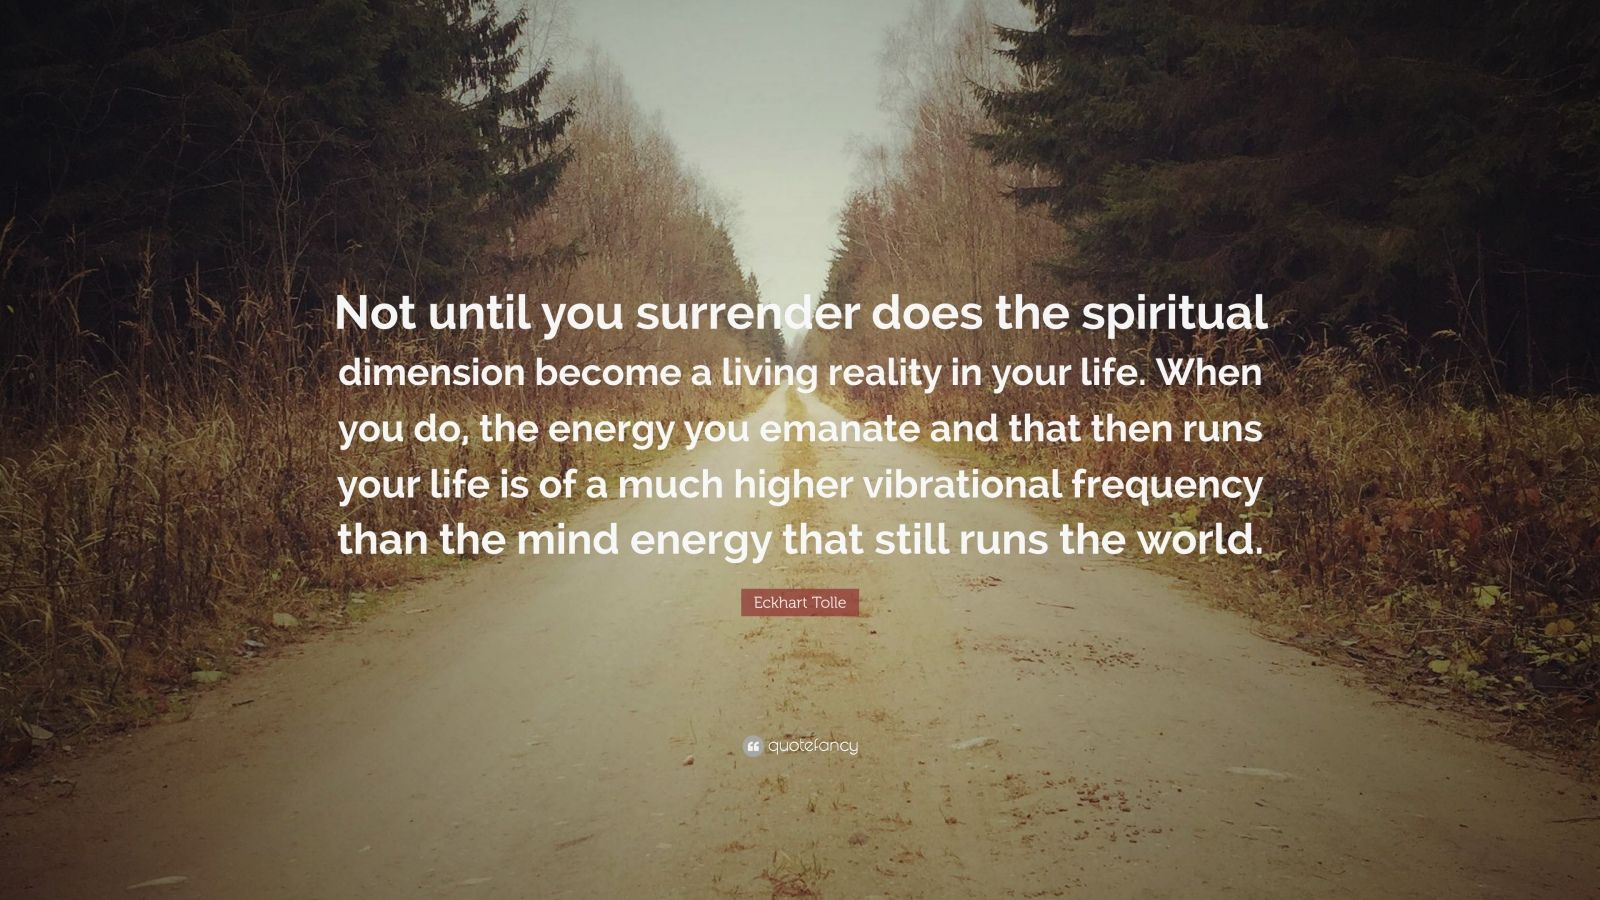 """Eckhart Tolle Quote: """"Not until you surrender does the spiritual dimension become a living reality in your life. When you do, the energy you emanate and that then runs your life is of a much higher vibrational frequency than the mind energy that still runs the world."""""""